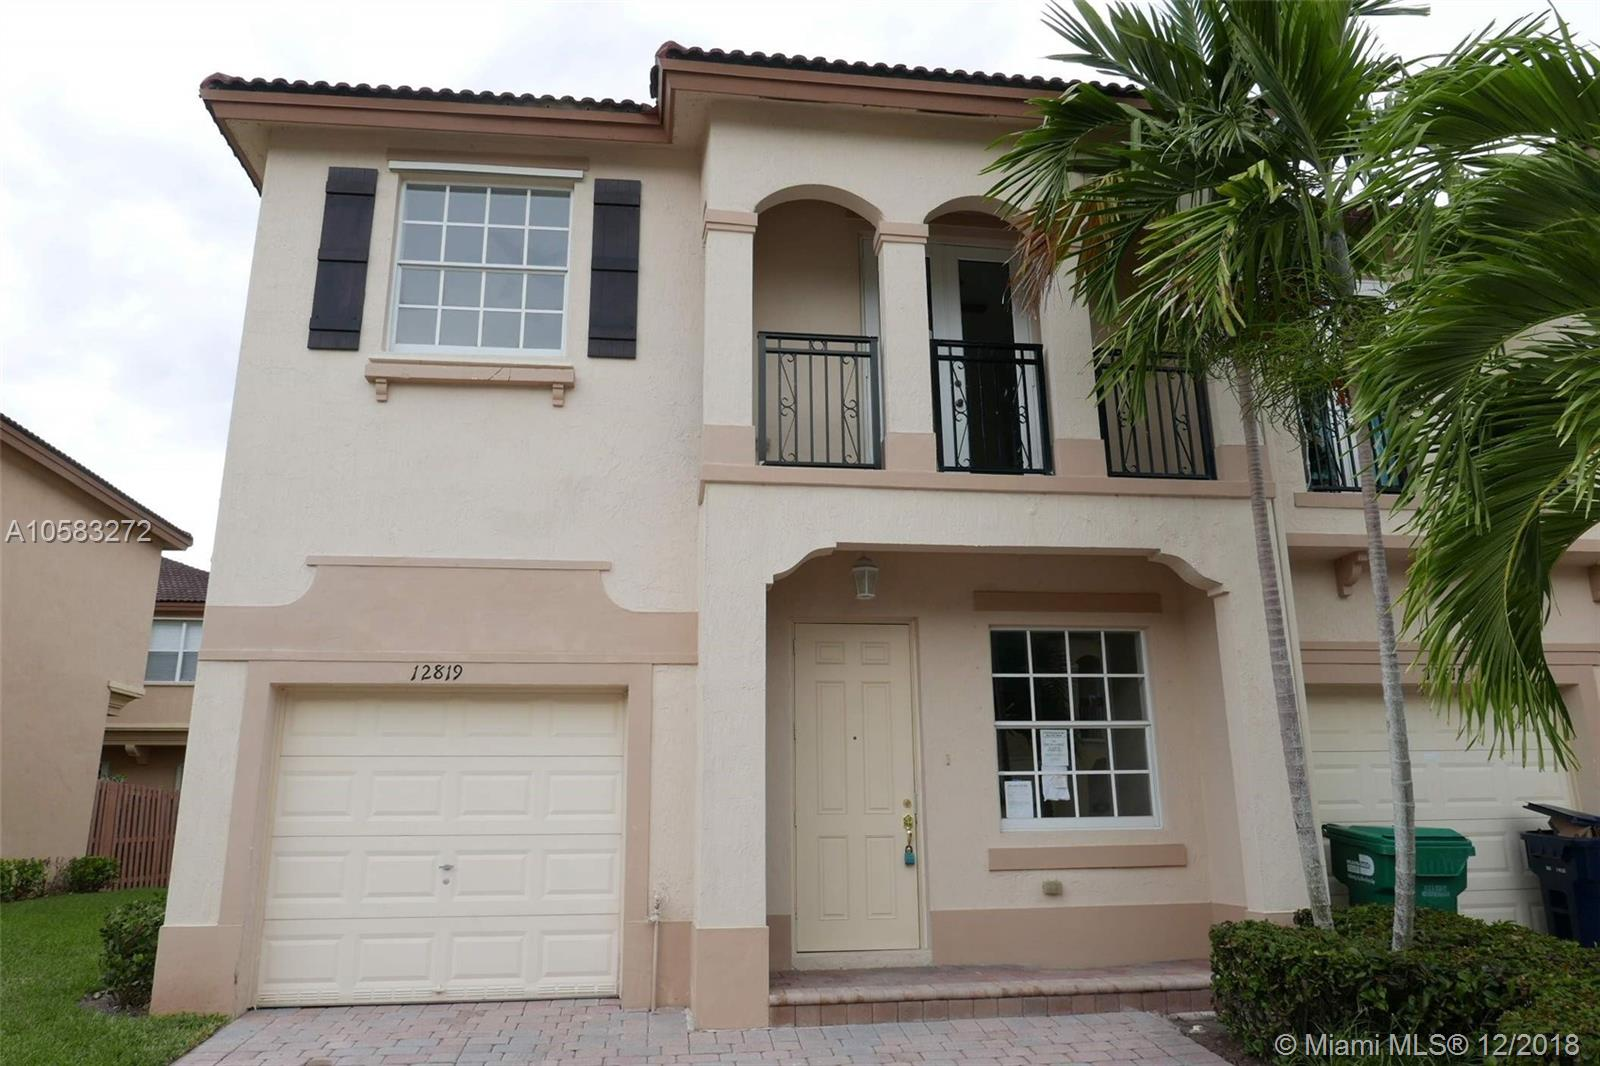 12819 SW 134th Ter #12819 For Sale A10583272, FL